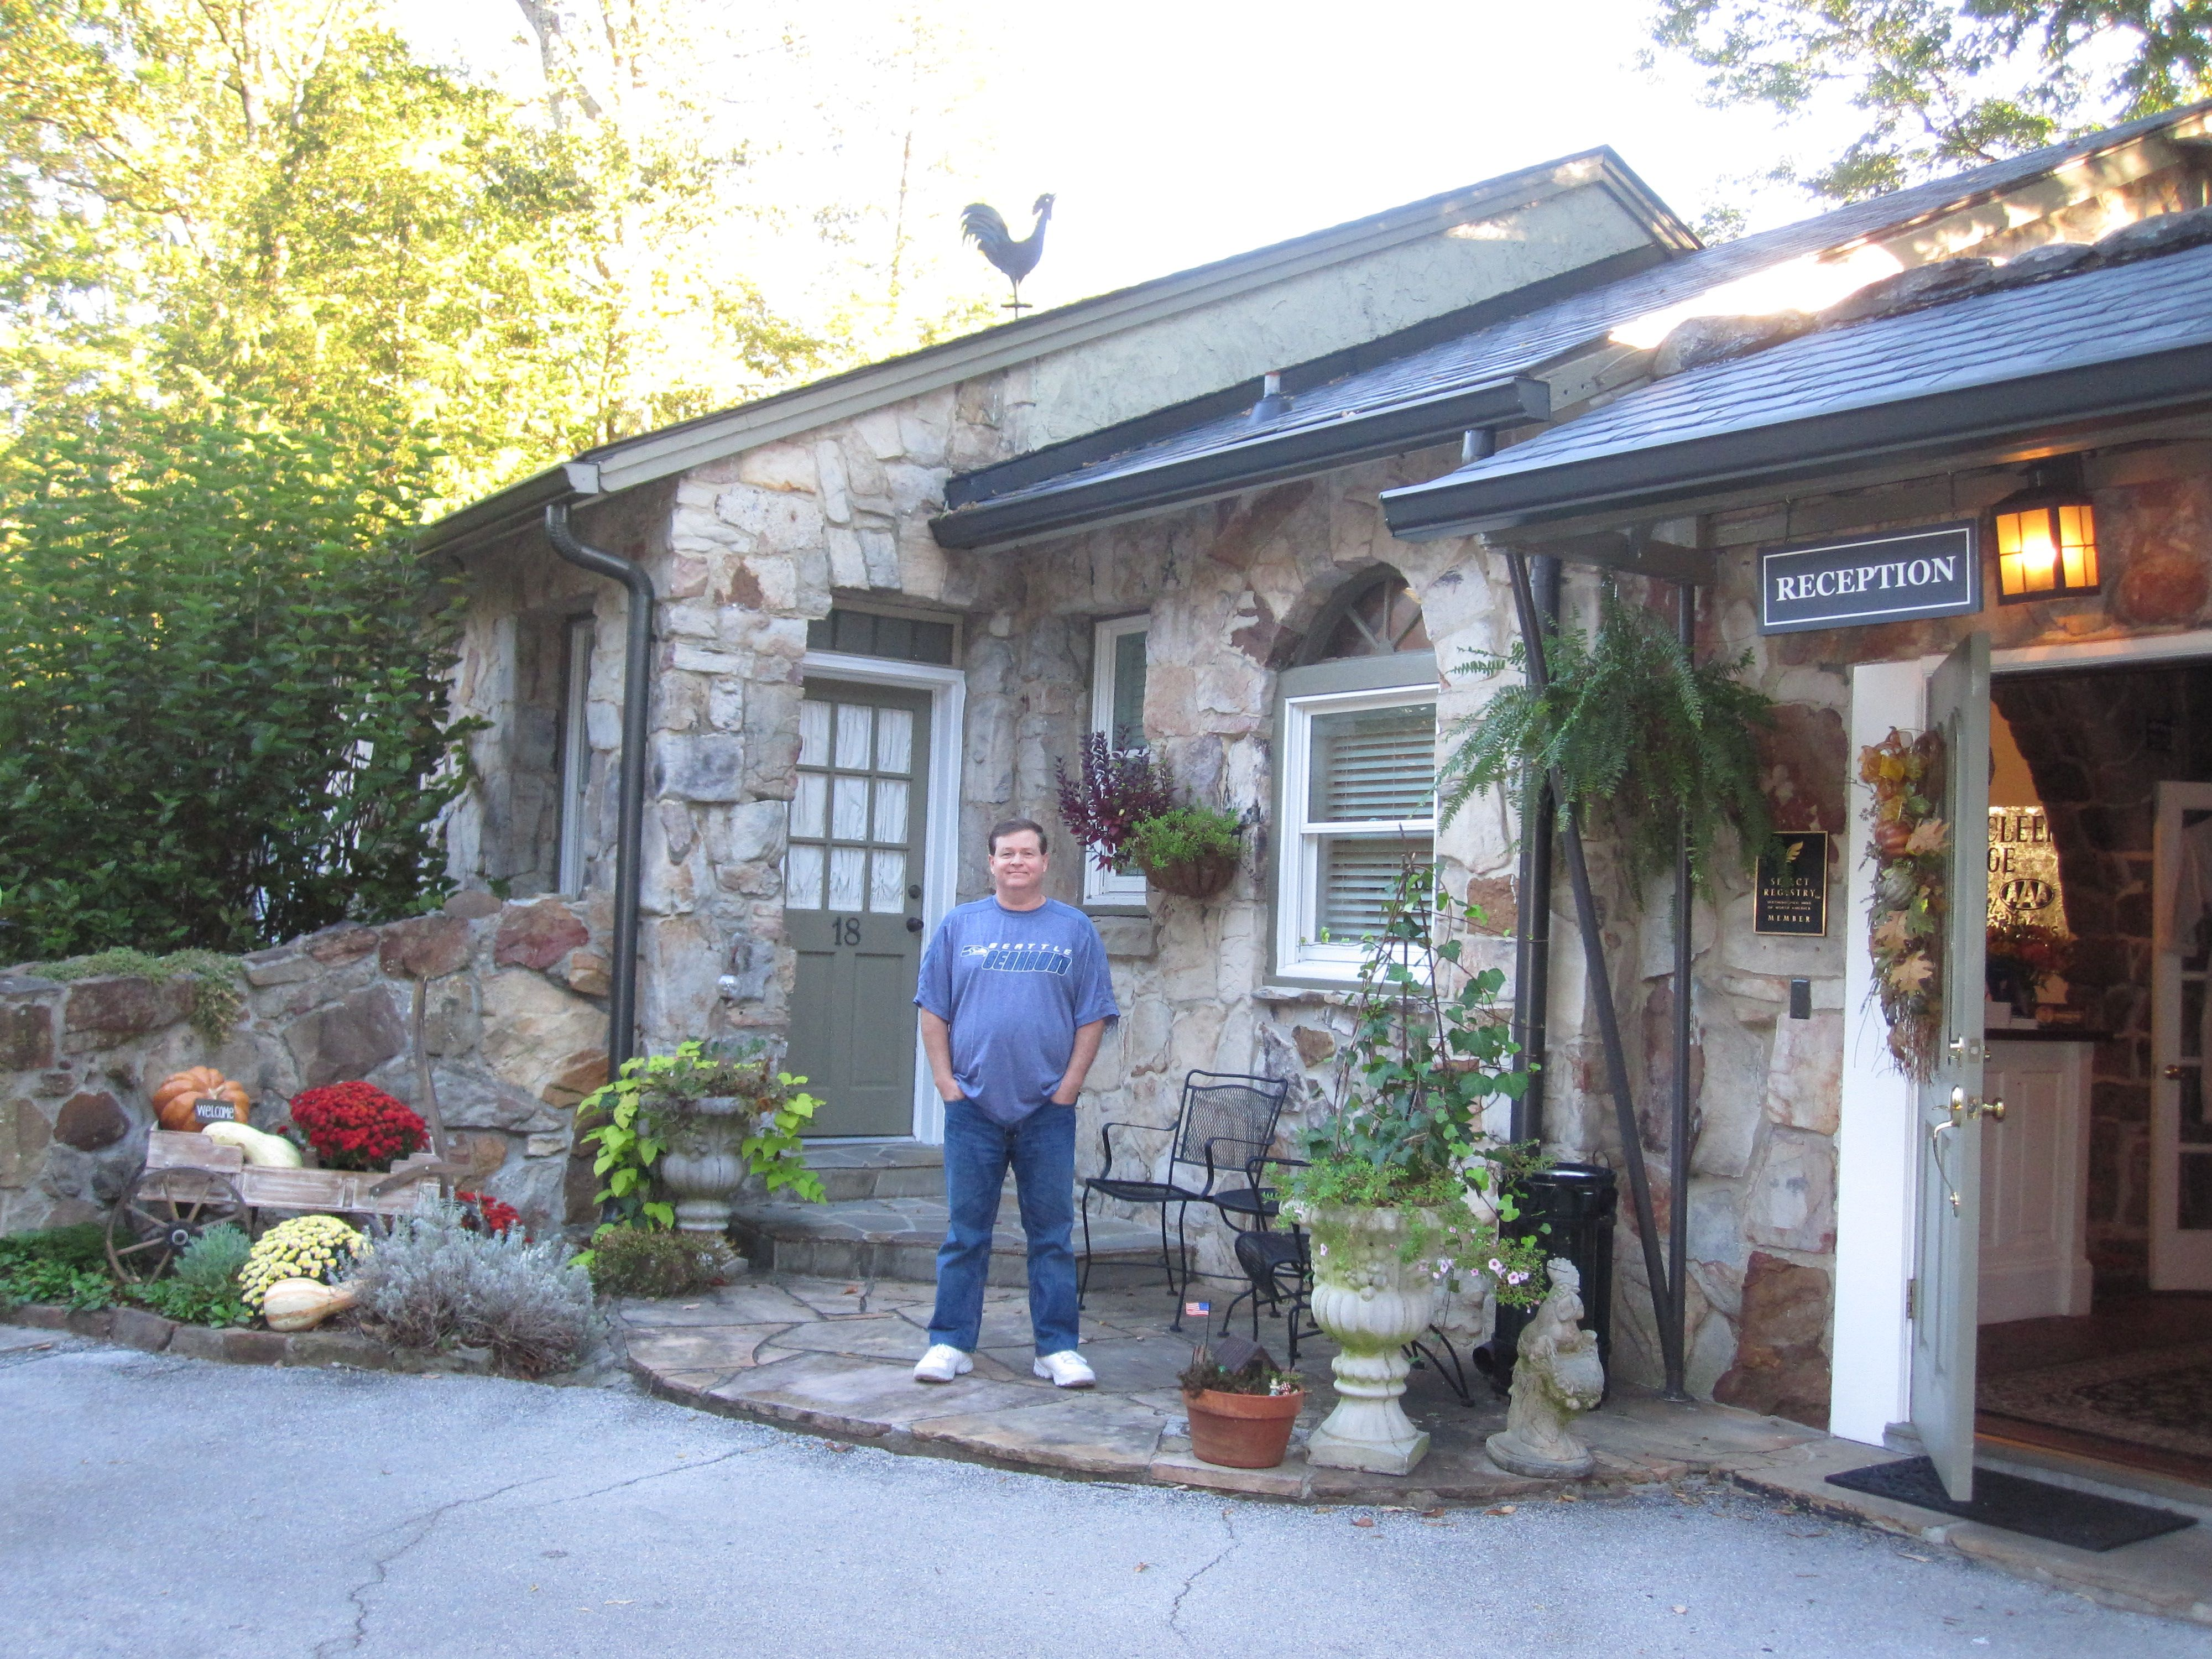 We stayed at the quaint Chanticleer Bed and Breakfast on